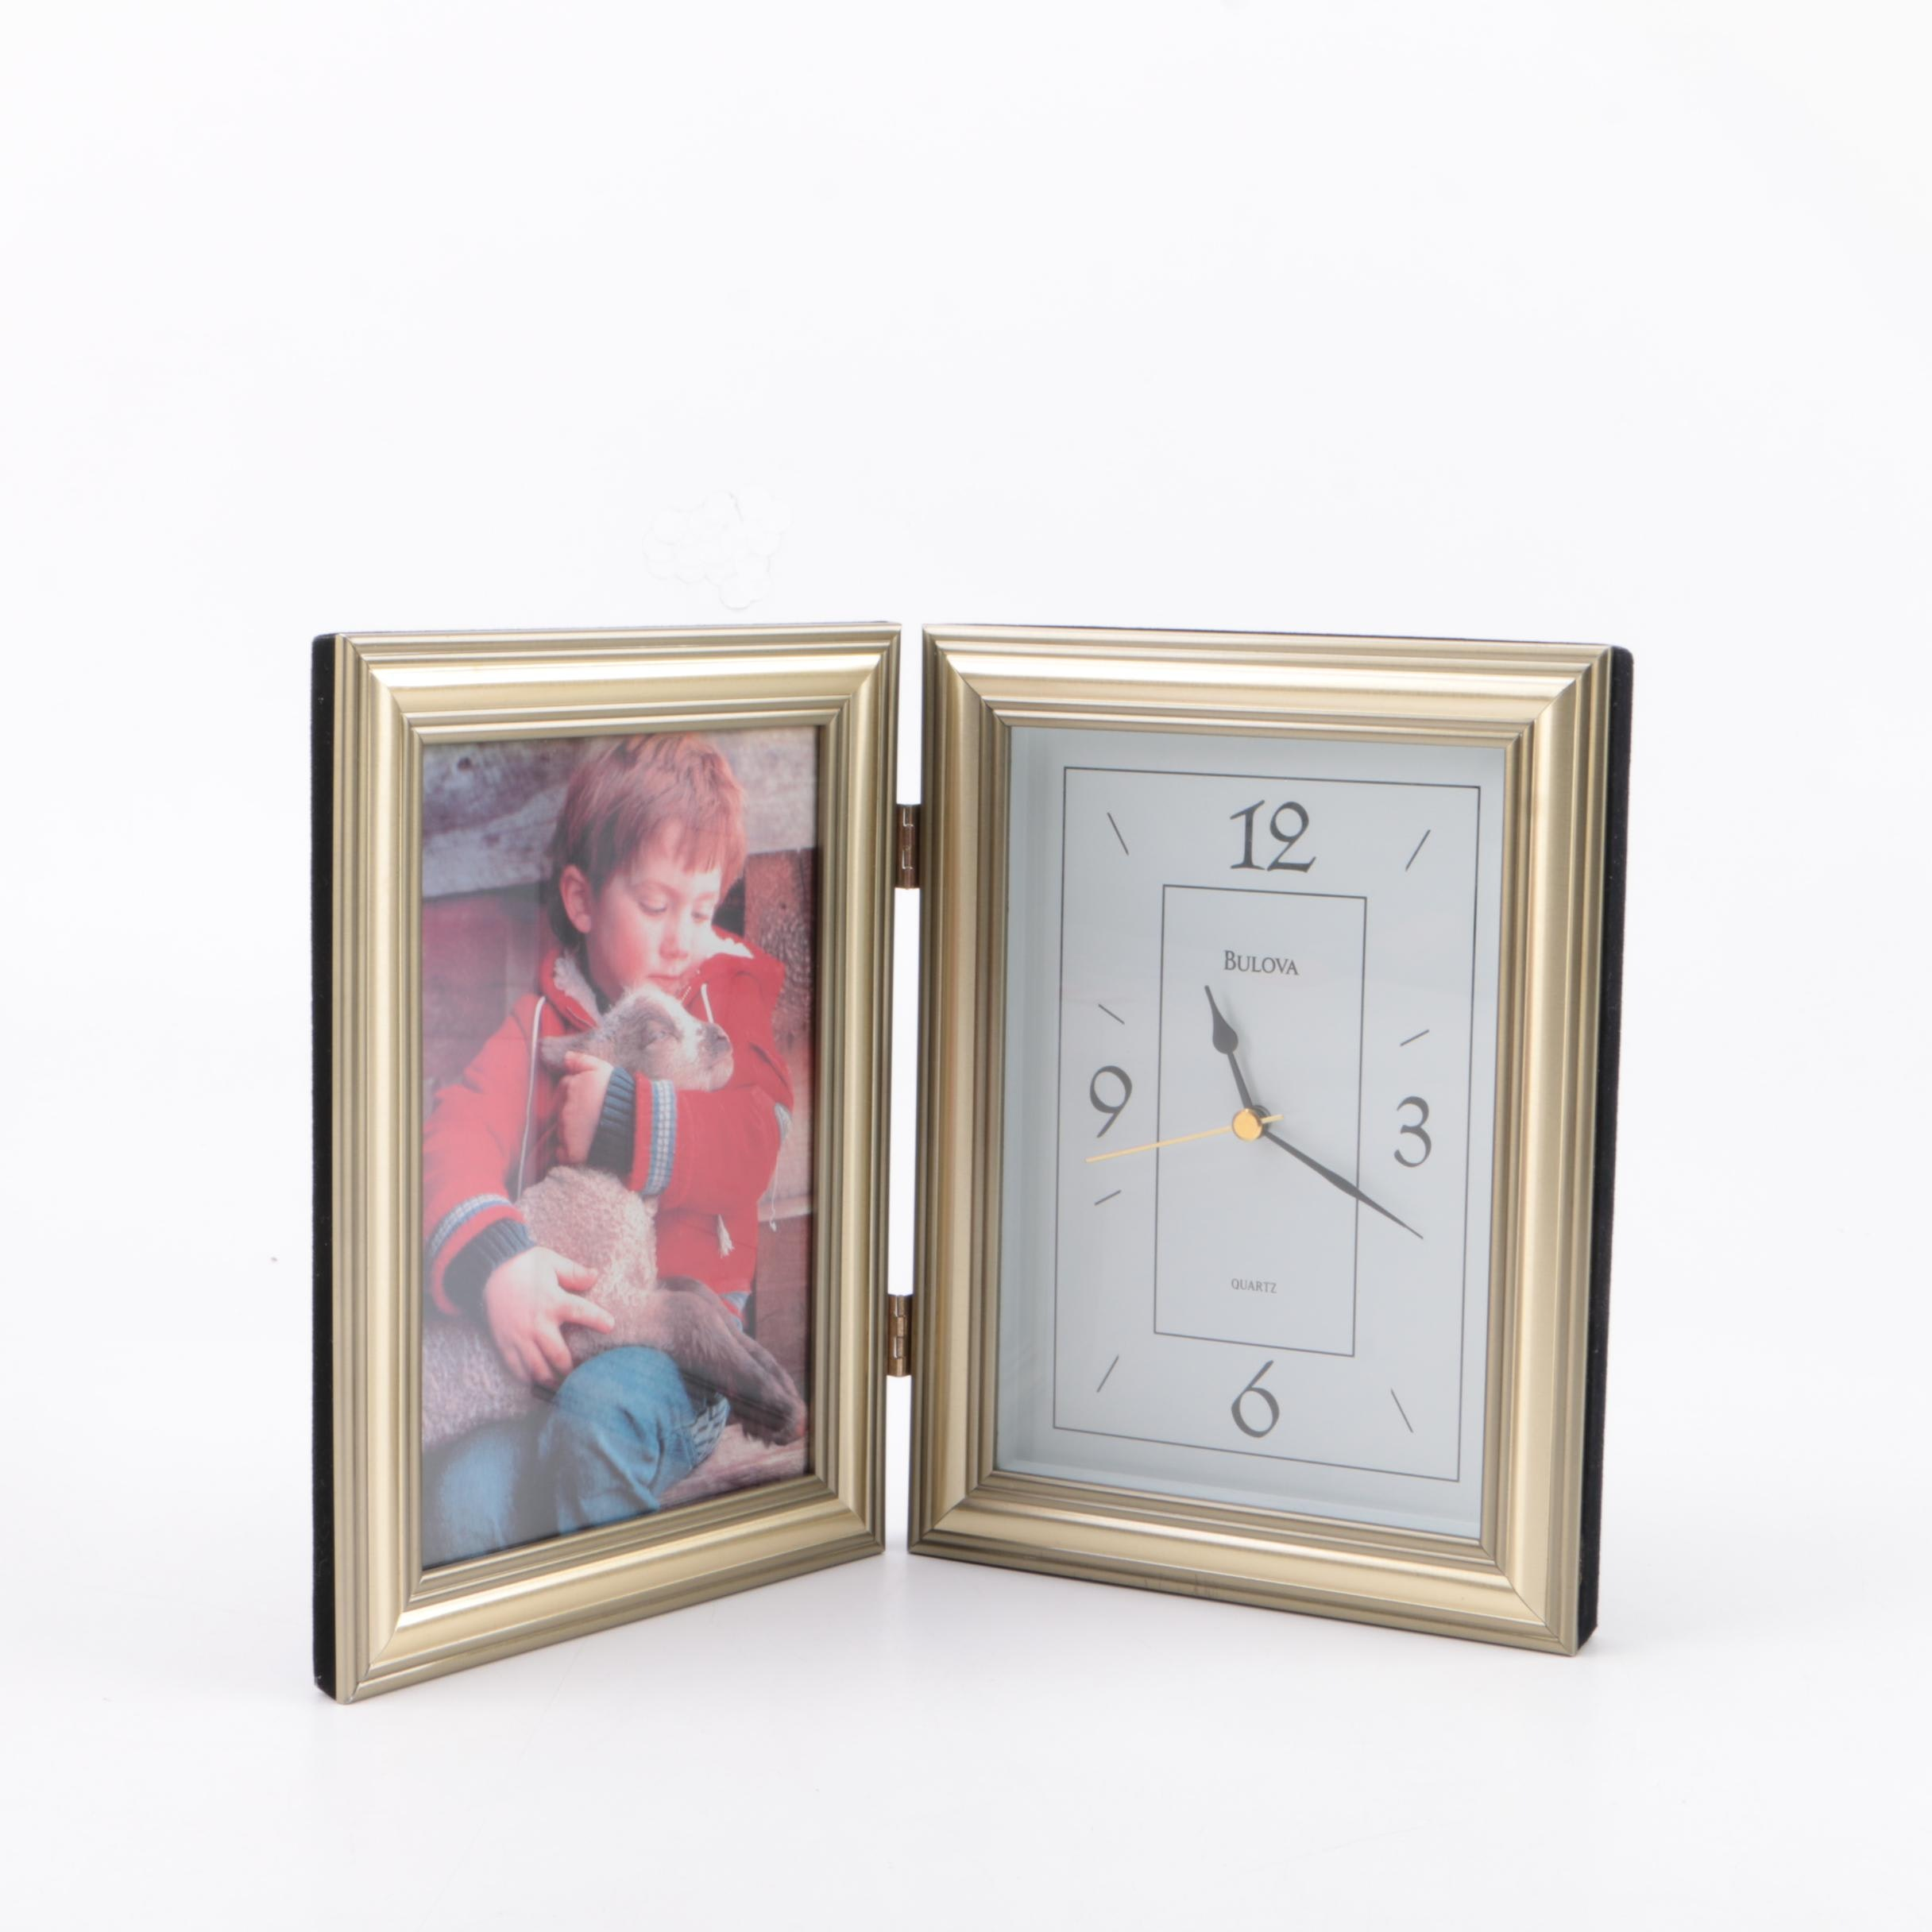 Bulova Clock and Picture Frame